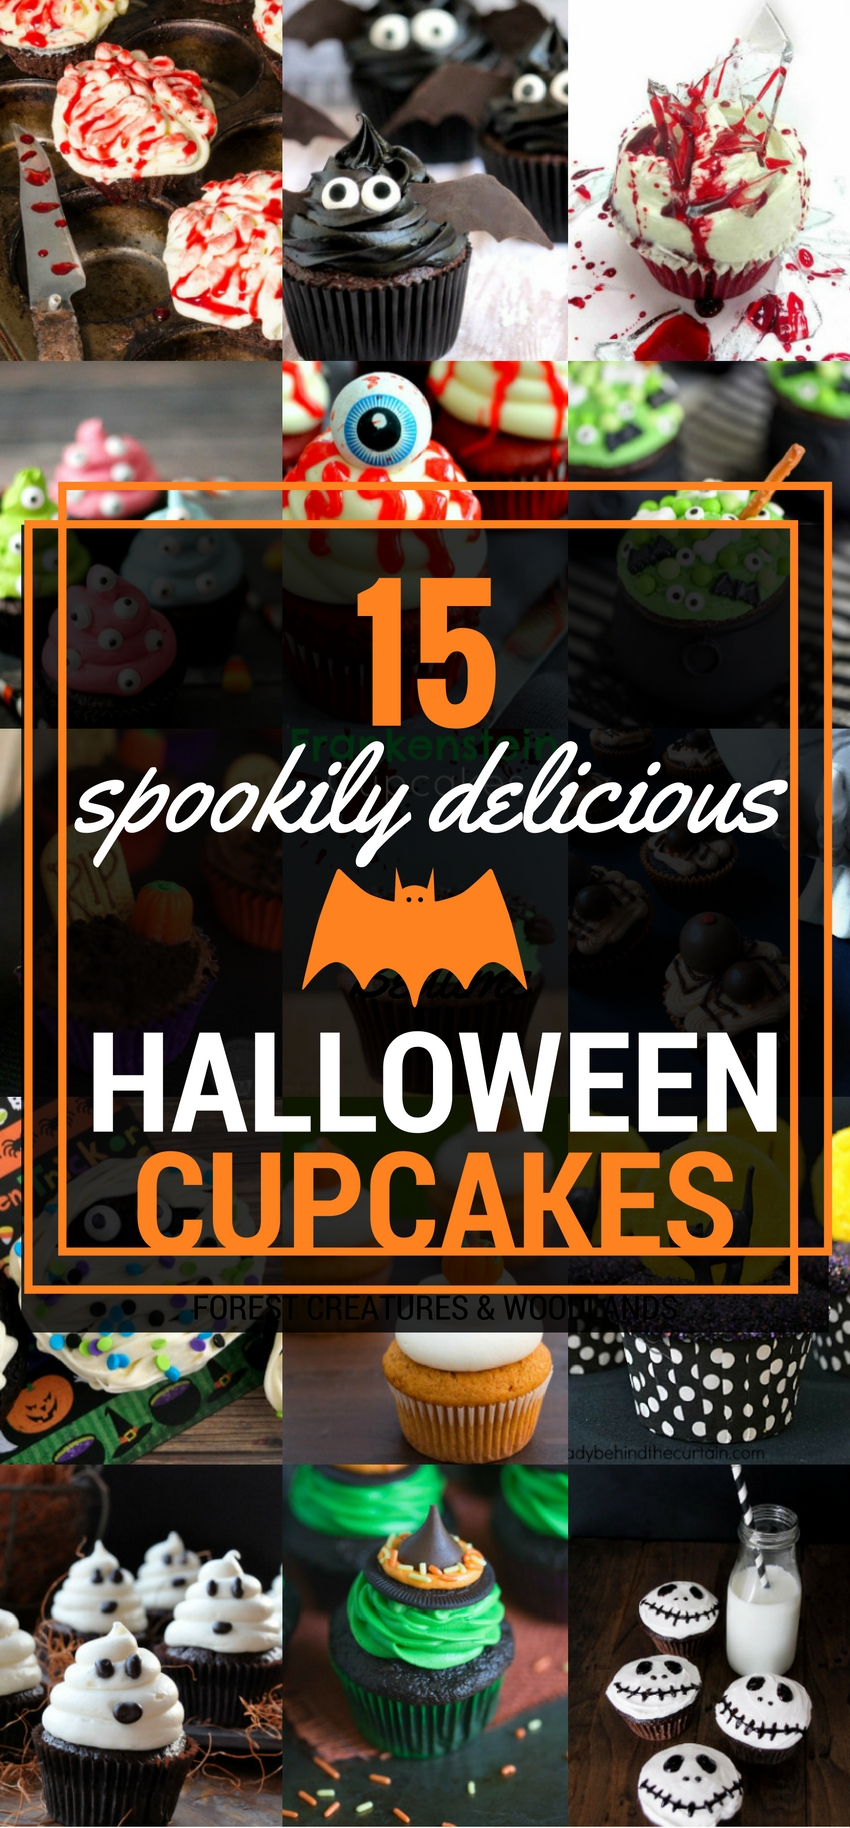 15-spookily-delicious-halloween-cupcakes-ideas-for-halloween-cupcakes-halloween-recipes